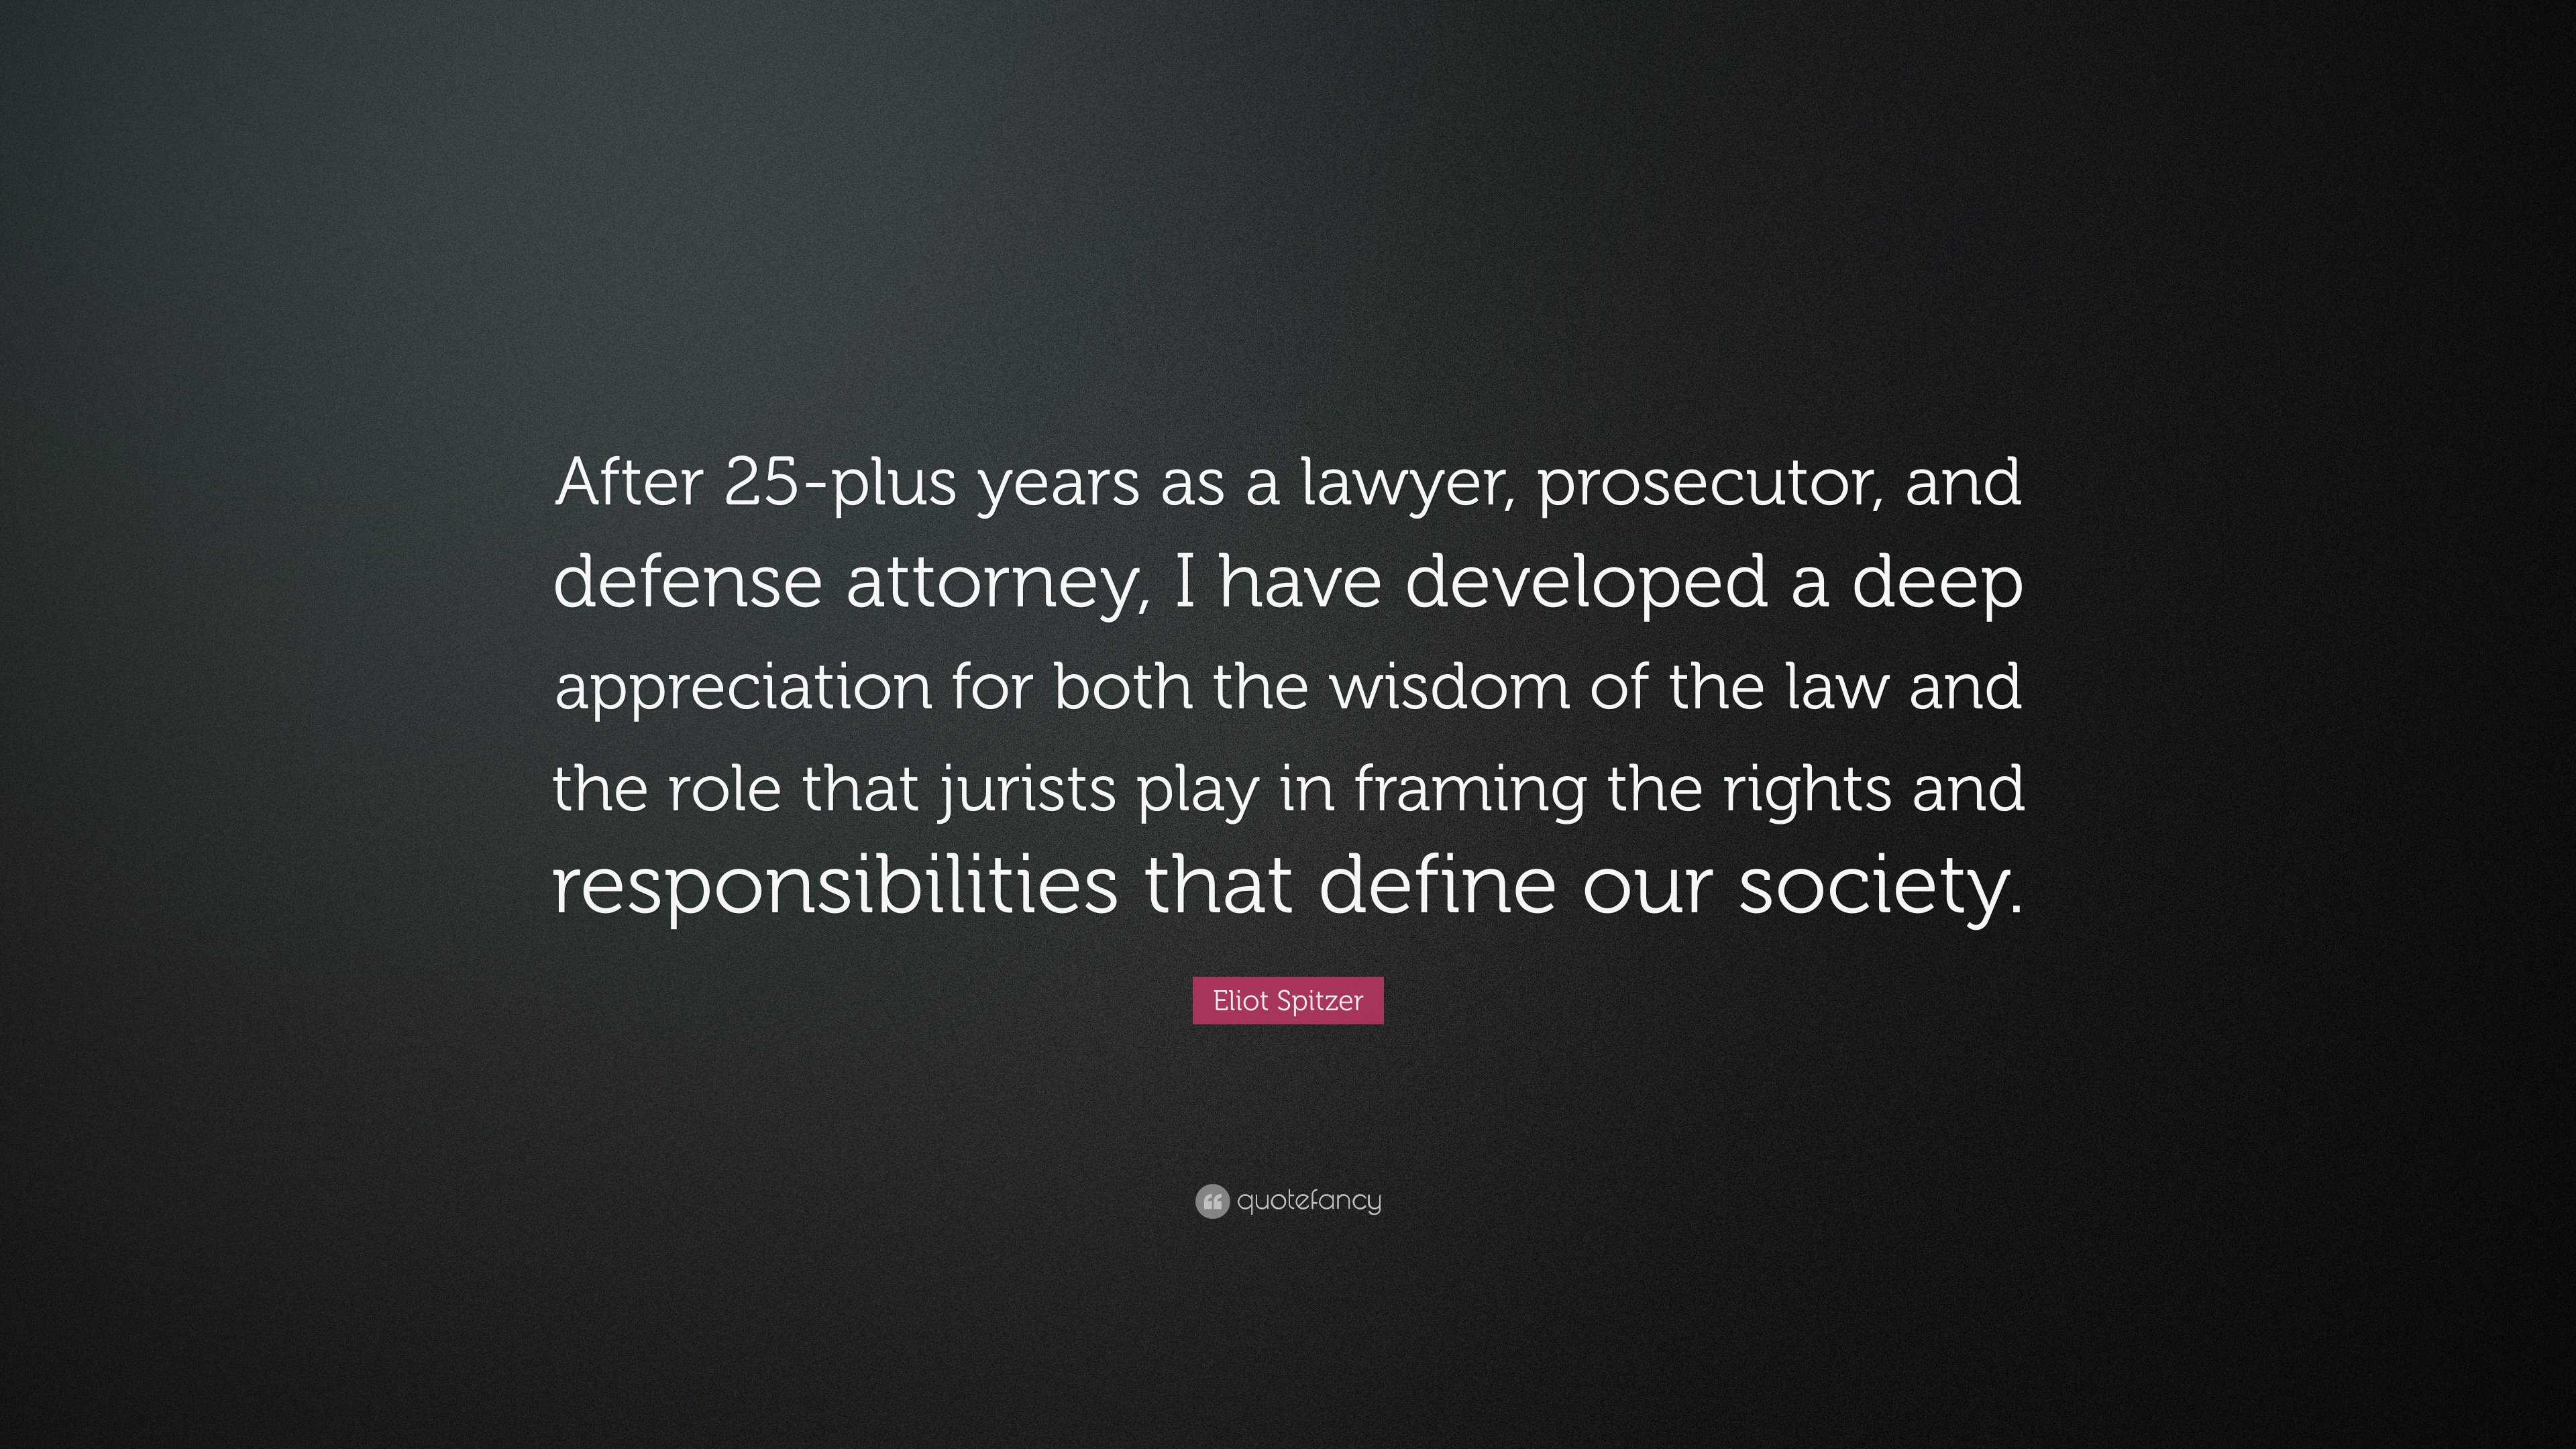 Eliot Spitzer Quote After 25 Plus Years As A Lawyer Prosecutor And Defense Attorney I Have Developed A Deep Appreciation For Both The Wis 7 Wallpapers Quotefancy